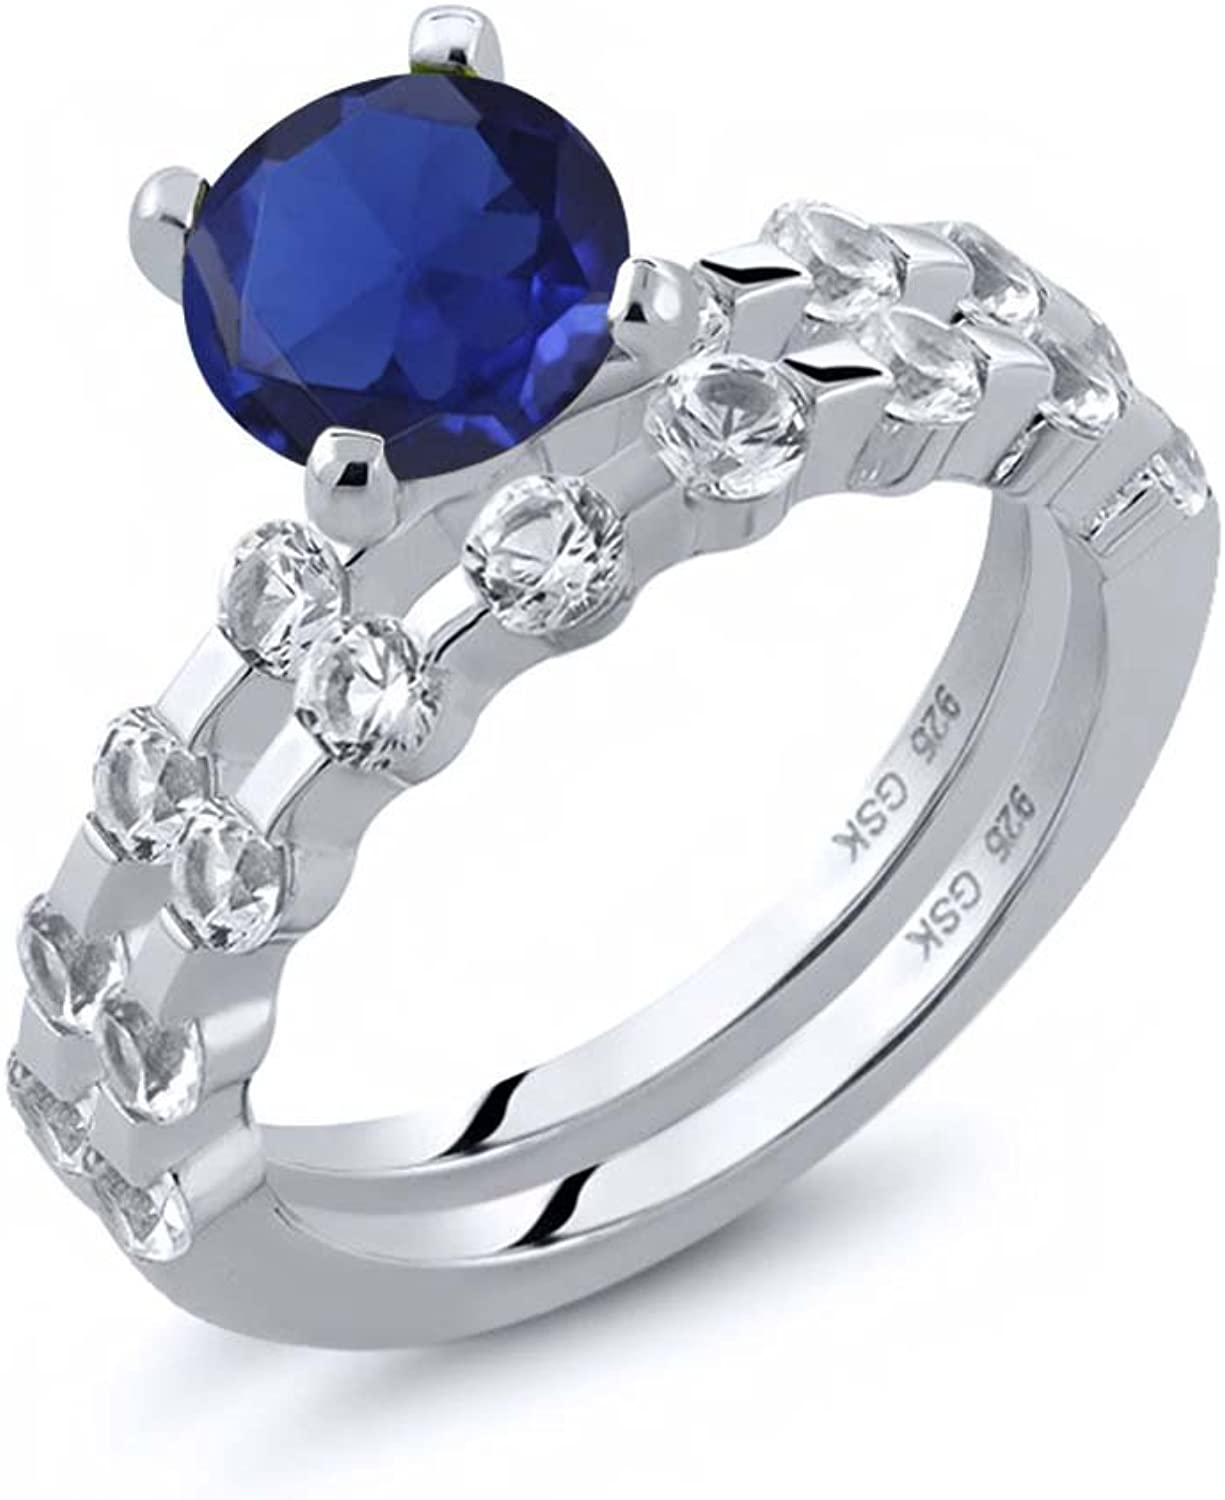 2.95 Ct Round bluee Simulated Sapphire White Topaz 925 Sterling Silver Ring Set